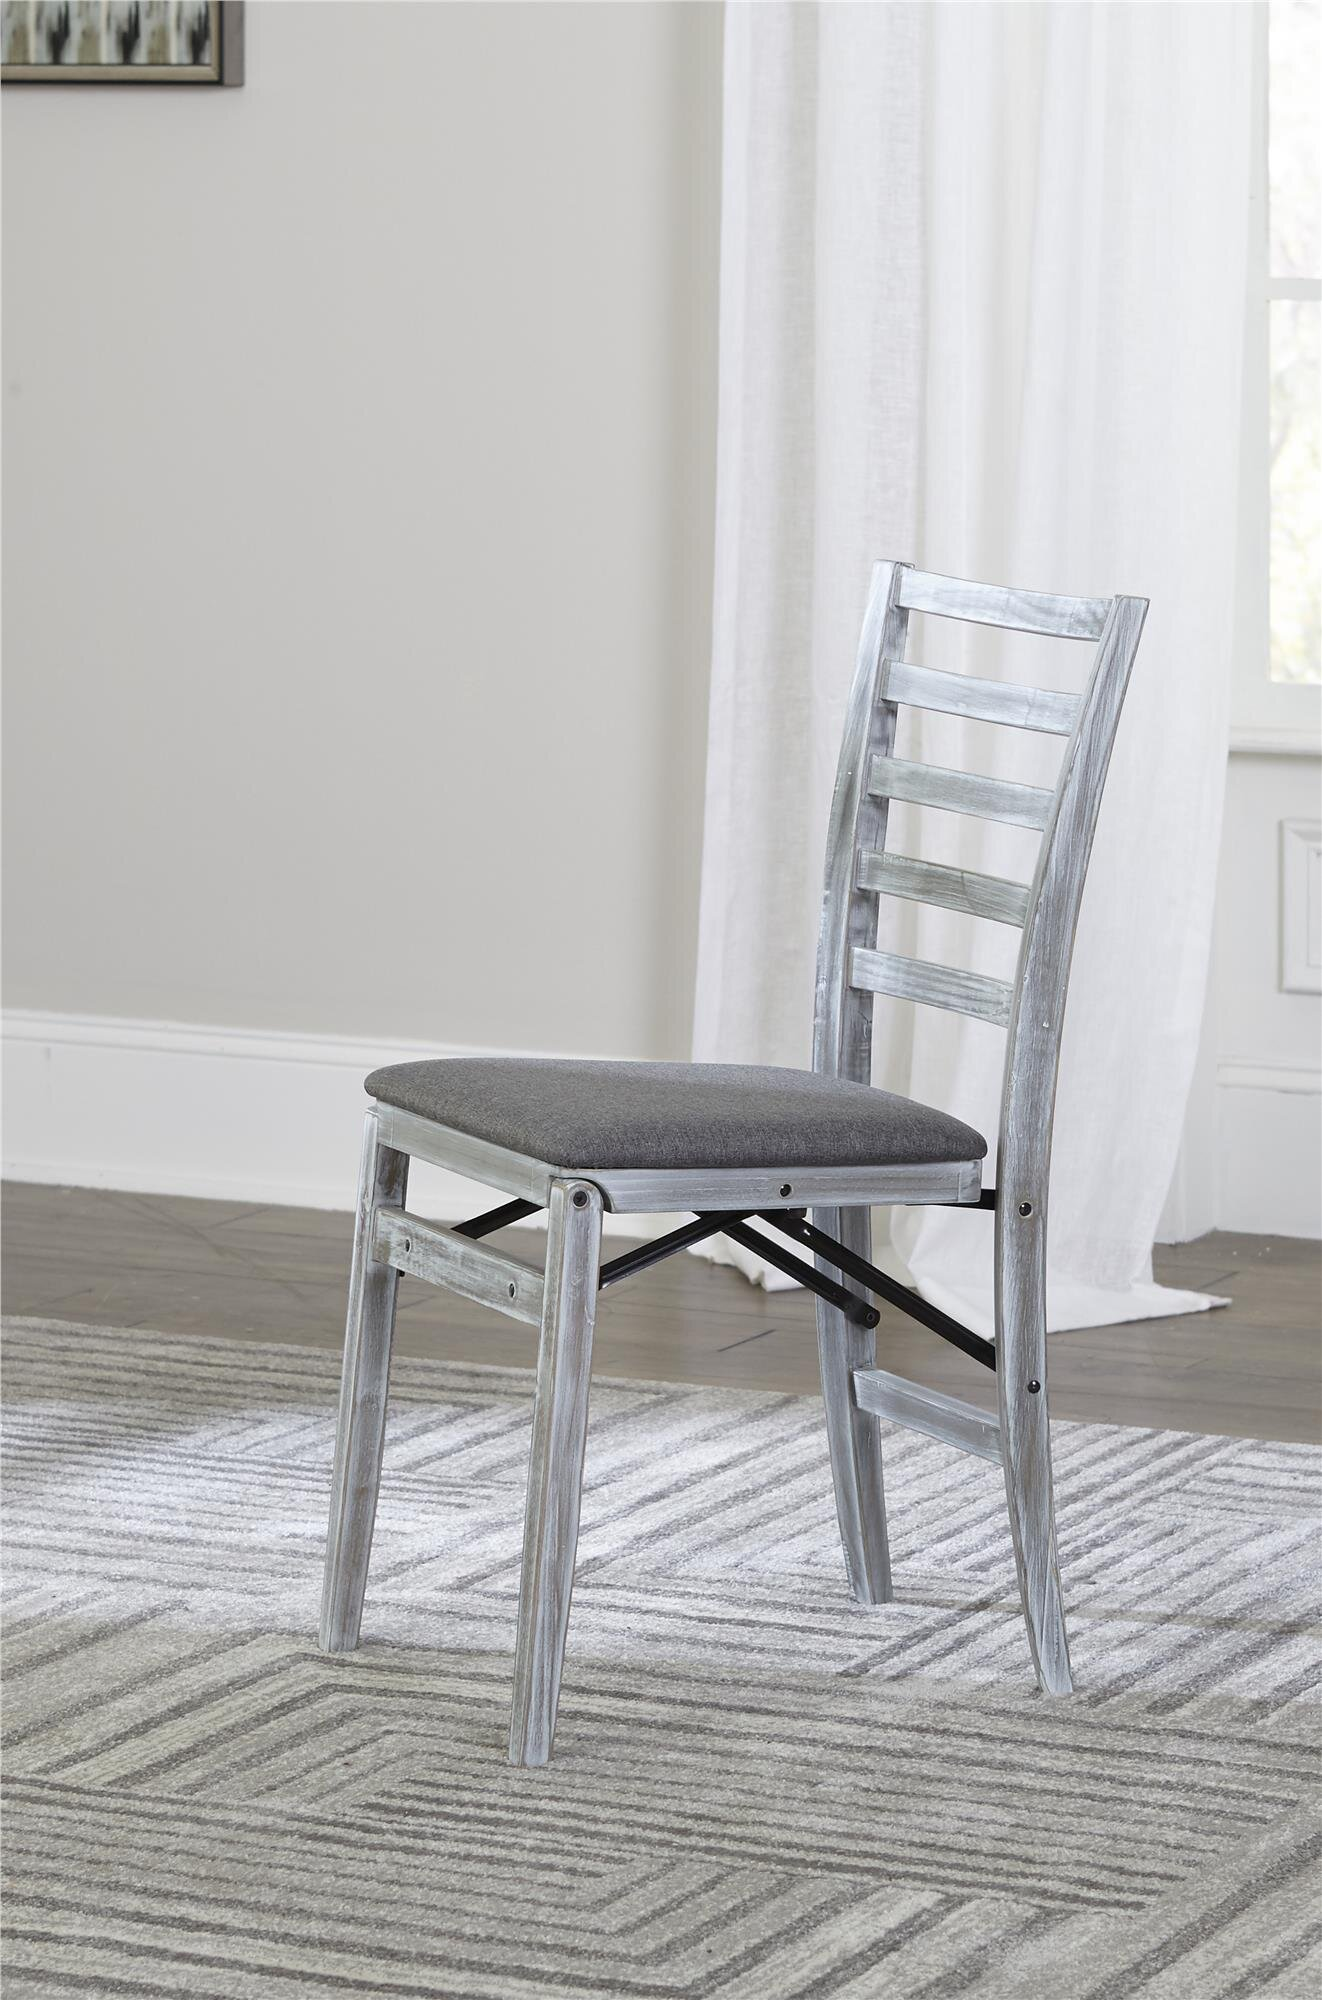 Gray 2 Pack Cosco Wood Folding Chair with Fabric Seat